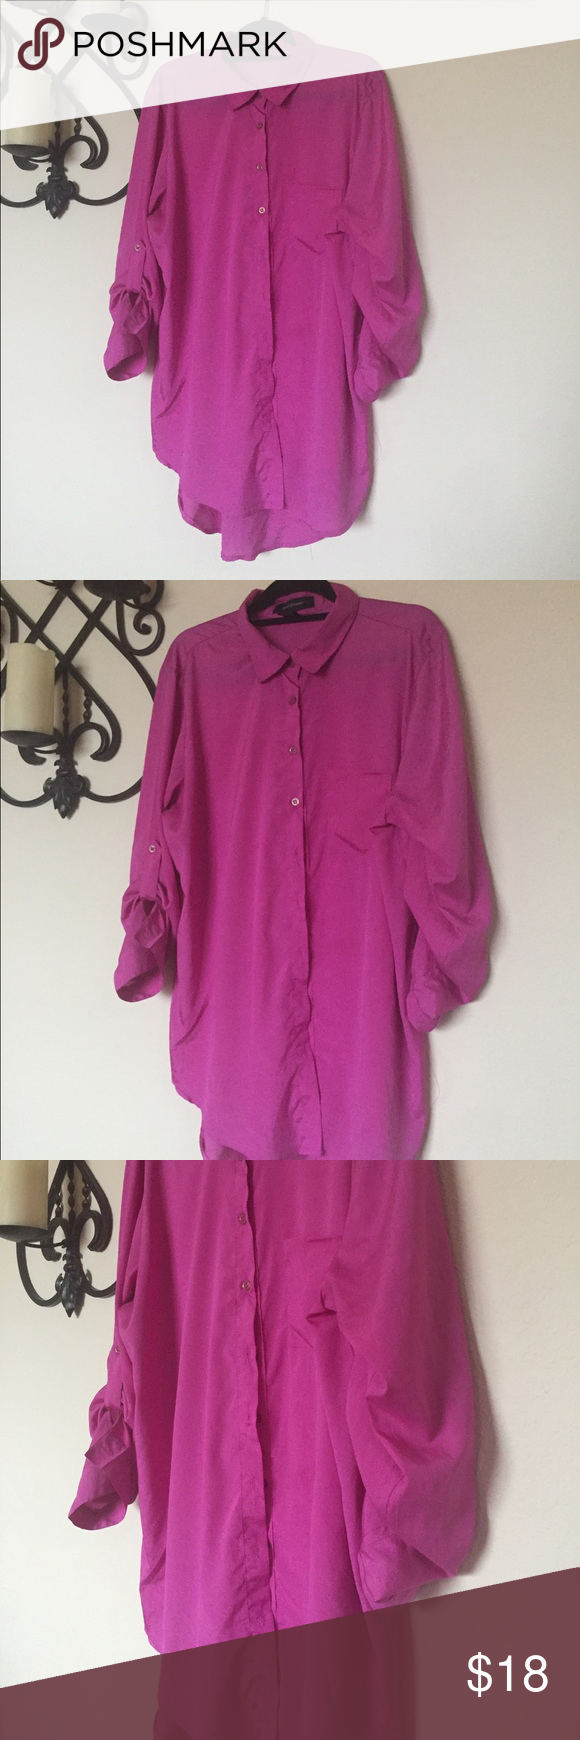 532416fb816 Ashley Stewart Button Down Rill Tab Tunic 14 16 Ashley Stewart Roll Tab  Sleeve Button Down Tunic Pink. Size 14 16. Loose fit. Tunic length.